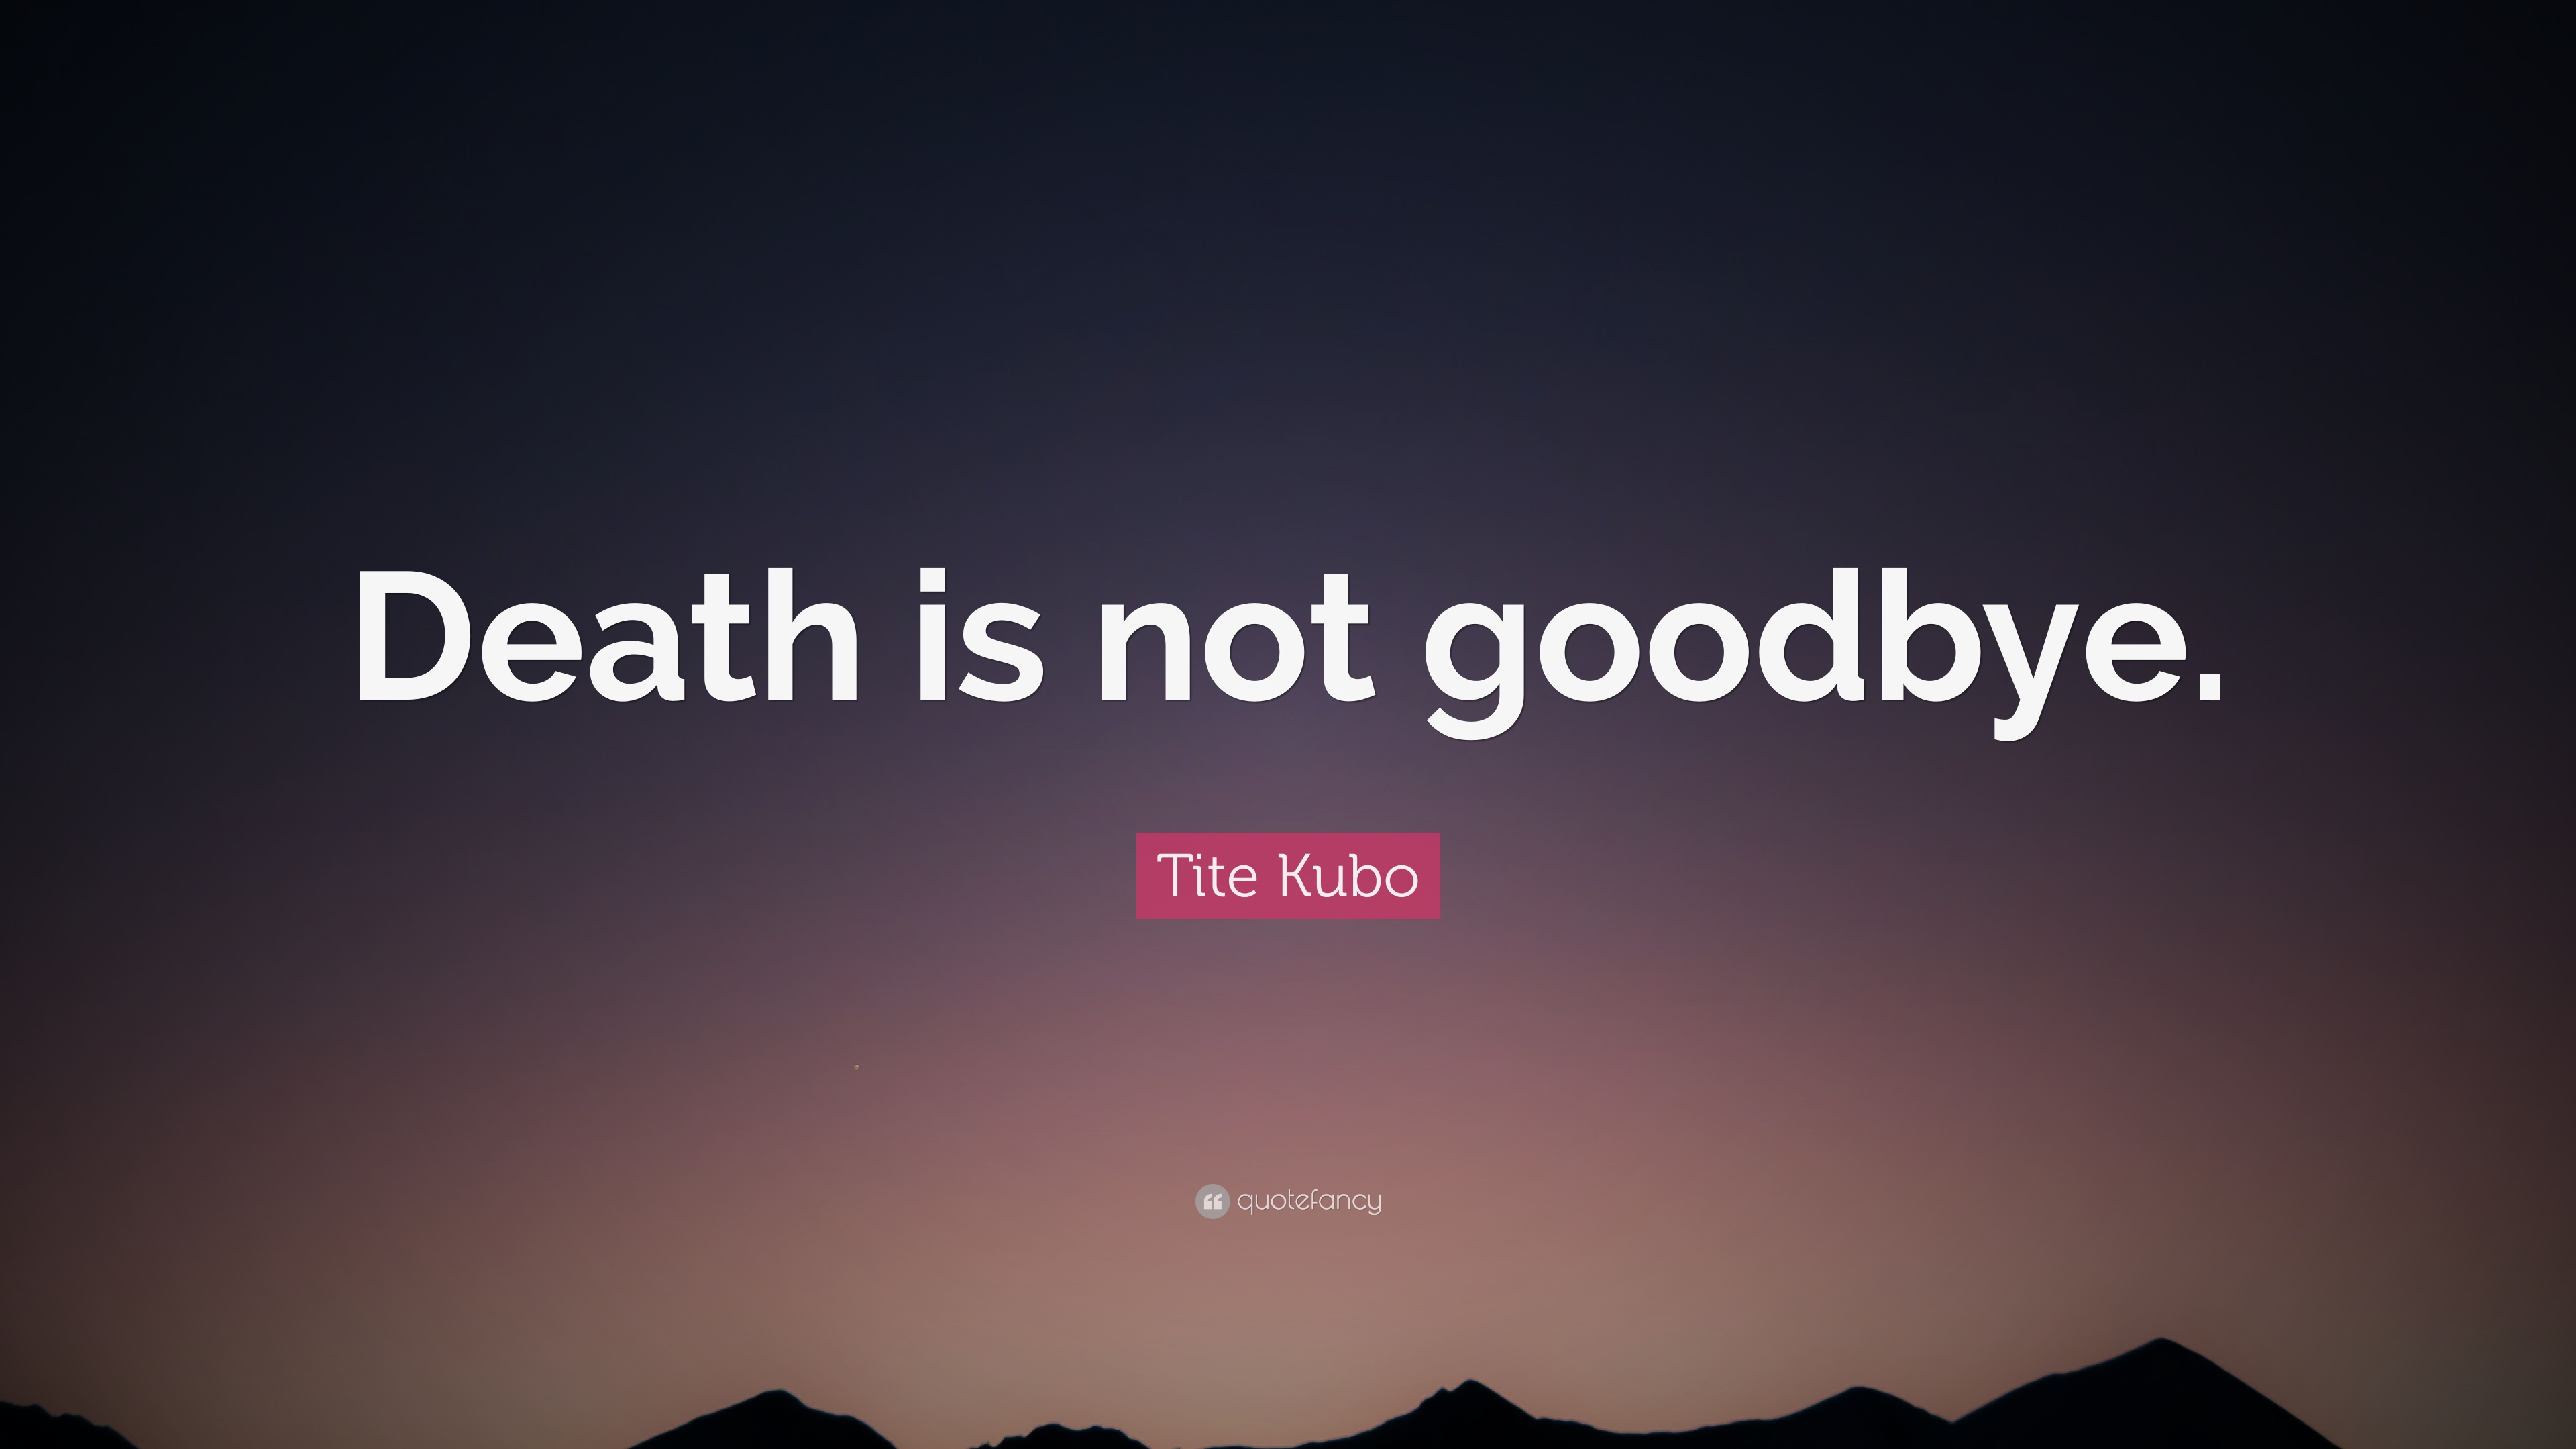 tite kubo quote death is not goodbye